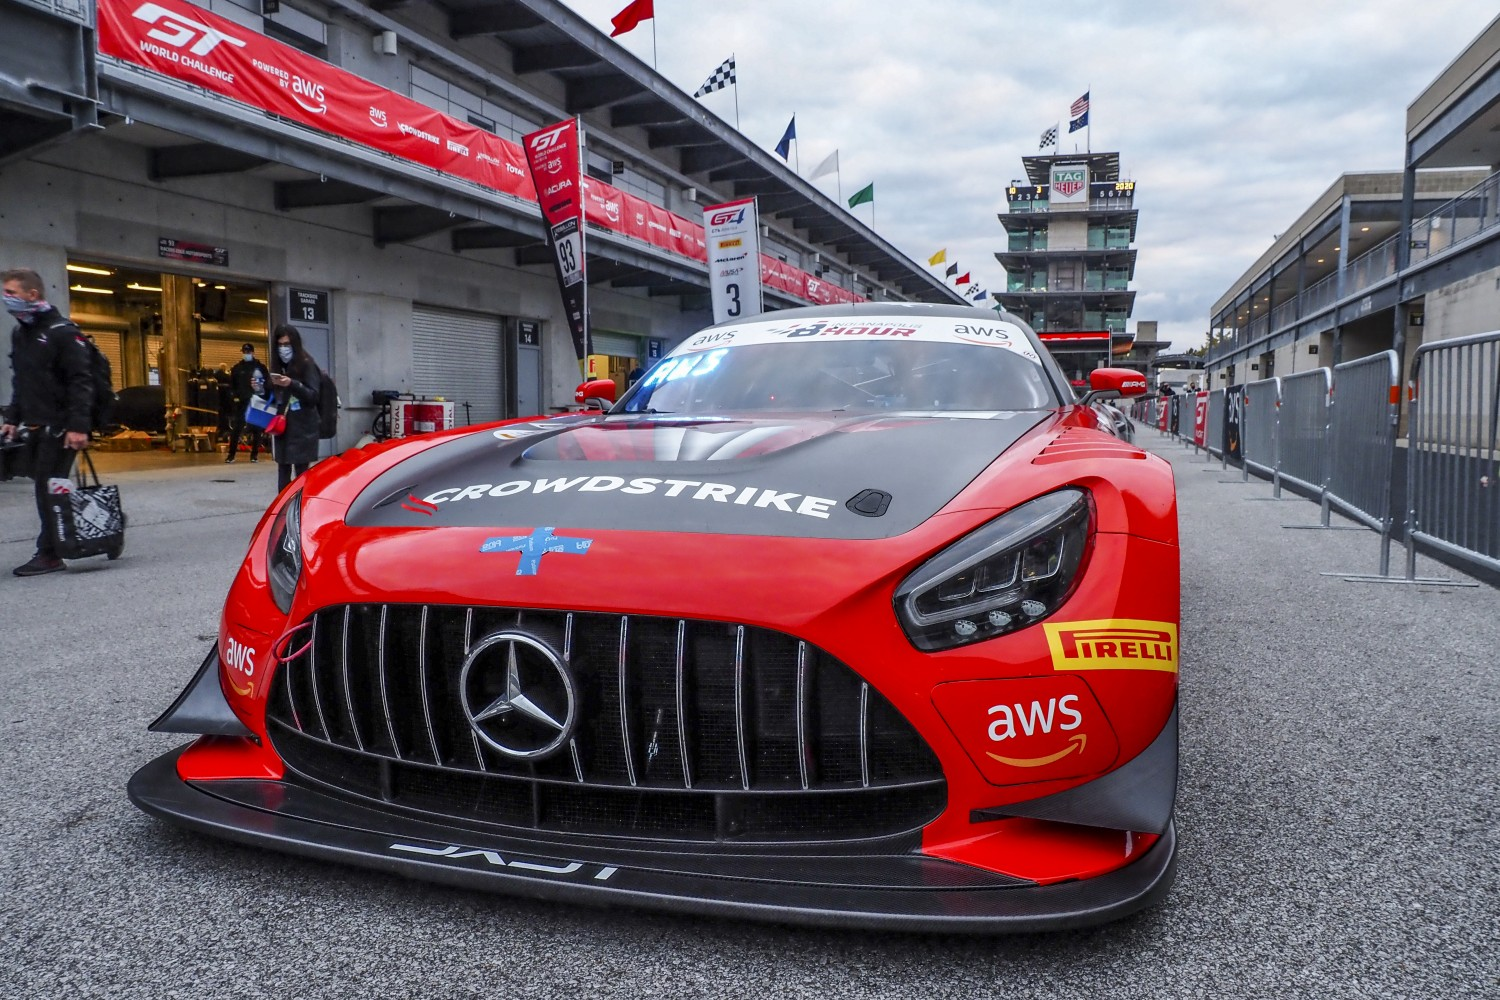 #04 Mercedes AMG GT3 of George Kurtz, Colin Braun and Richard Hesitand, DXDT Racing, GT3 Pro-Am, SRO, Indianapolis Motor Speedway, Indianapolis, IN, September 2020.  | Brian Cleary/SRO